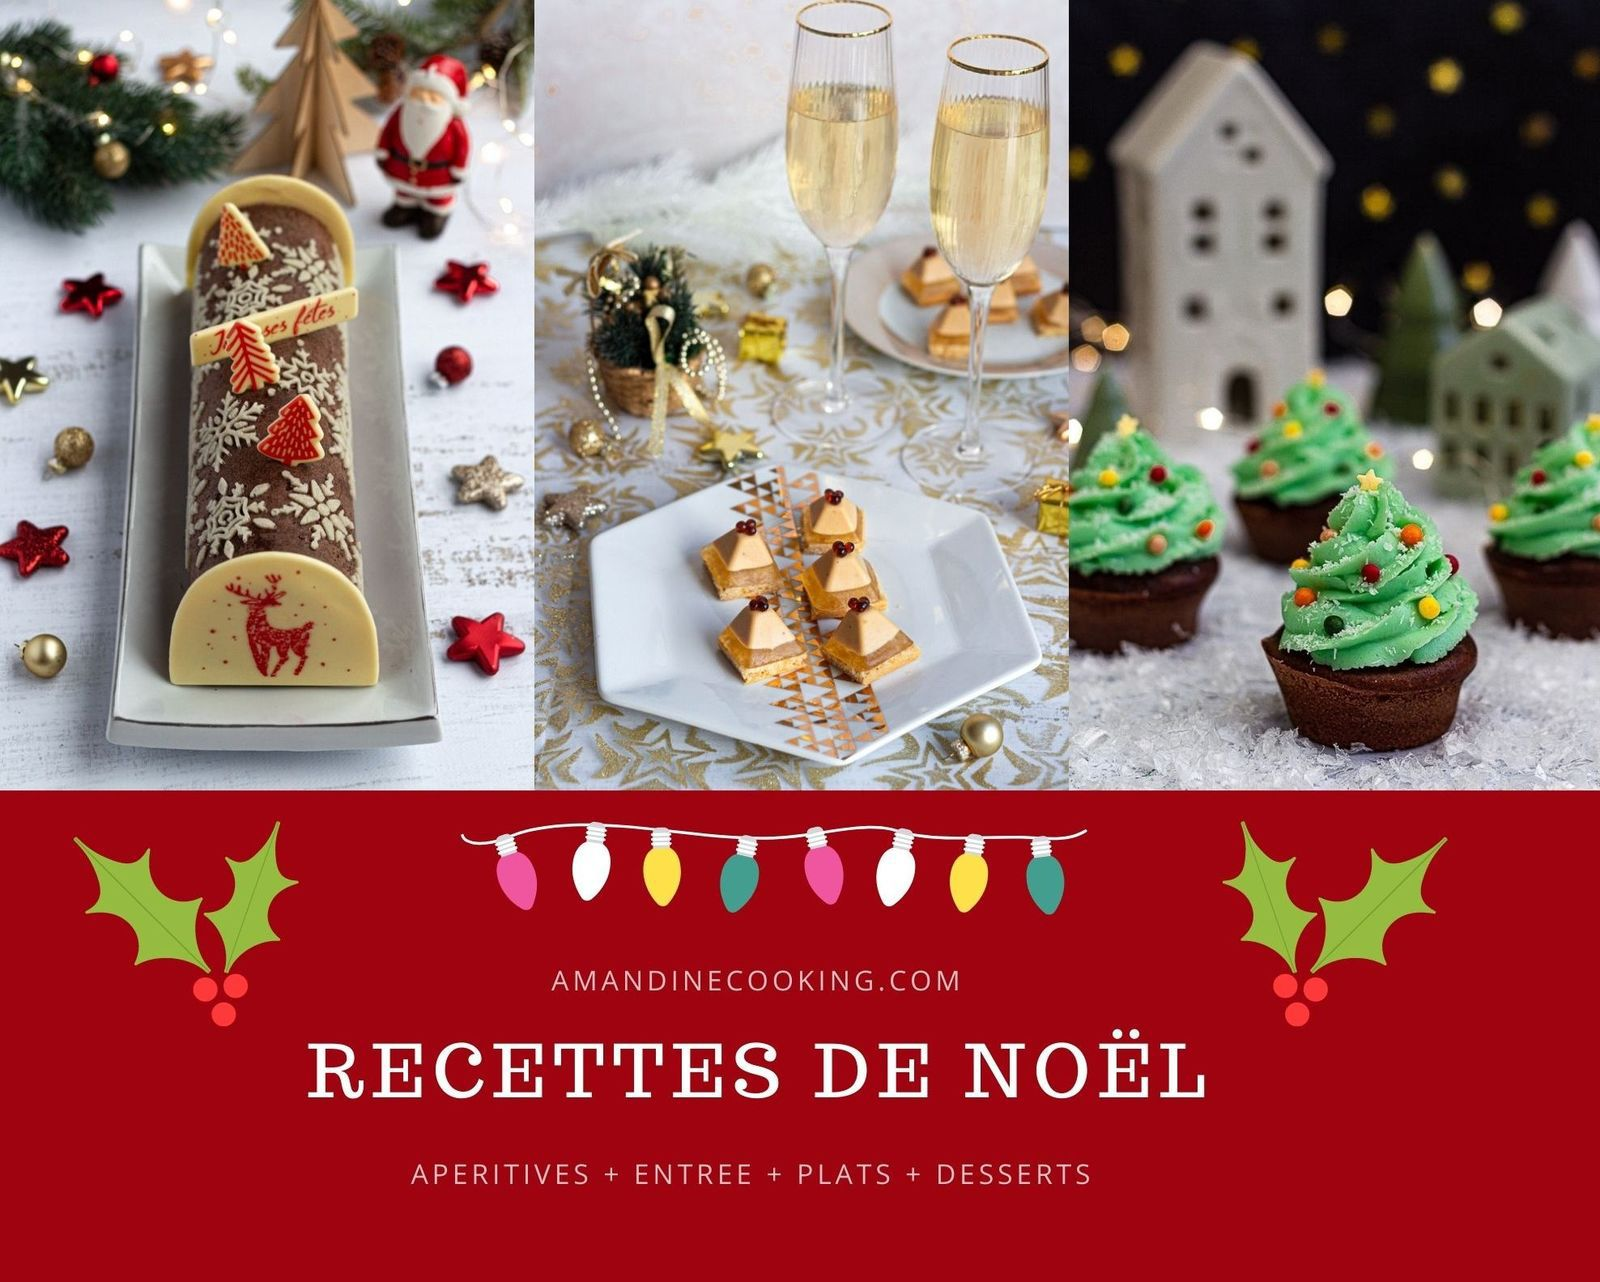 Menu De Noel Idees Recettes Salees Et Sucrees Amandine Cooking